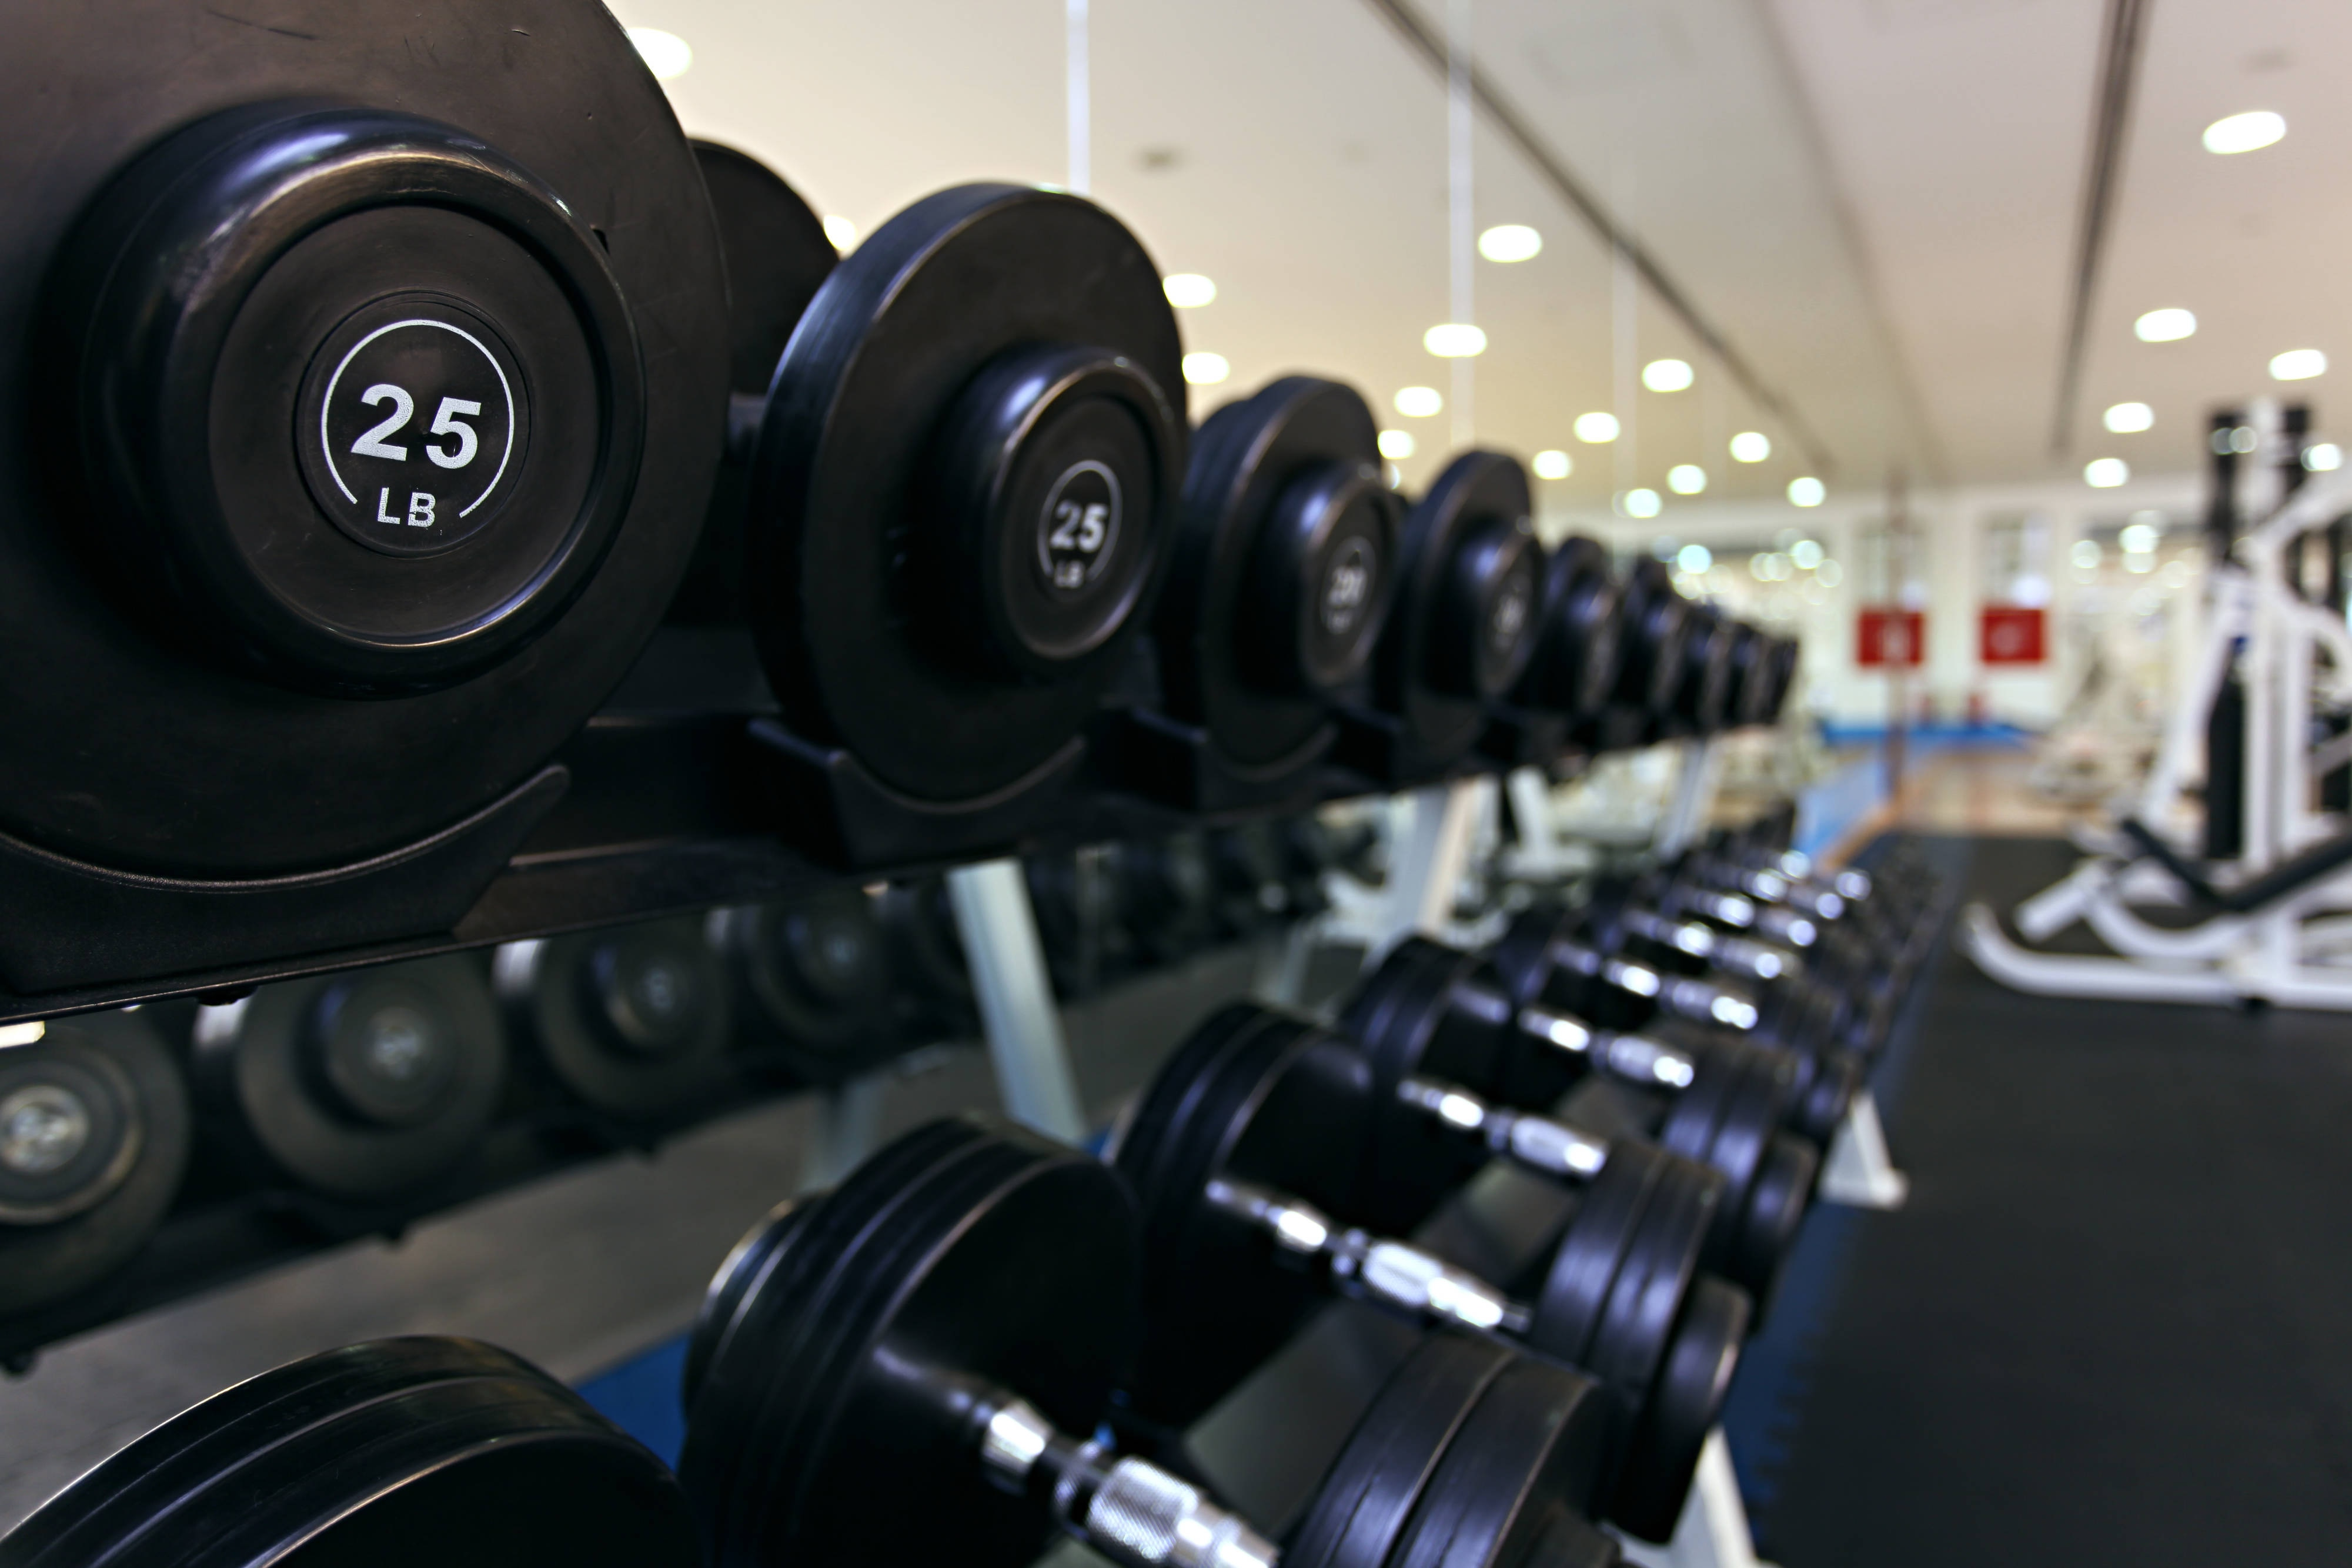 Jeddah hotel fitness facilities